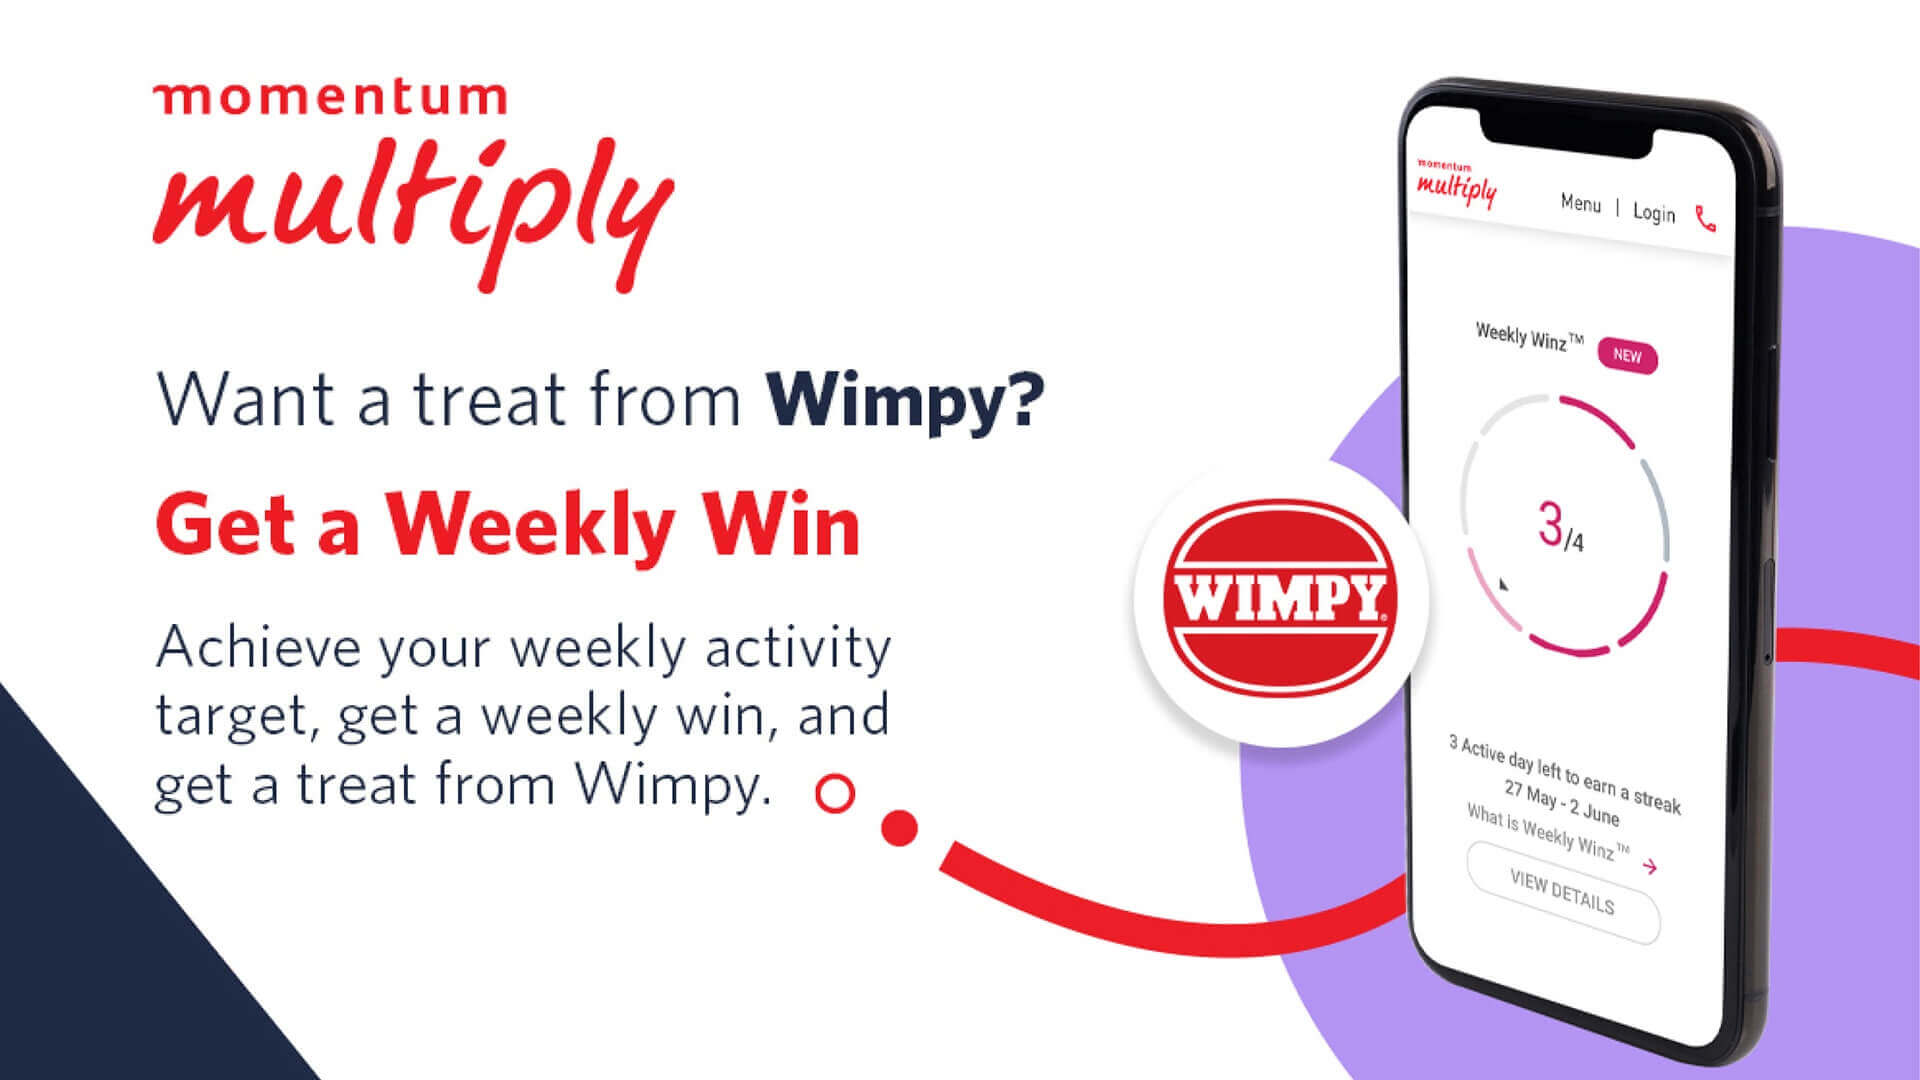 Wimpy and Momentum